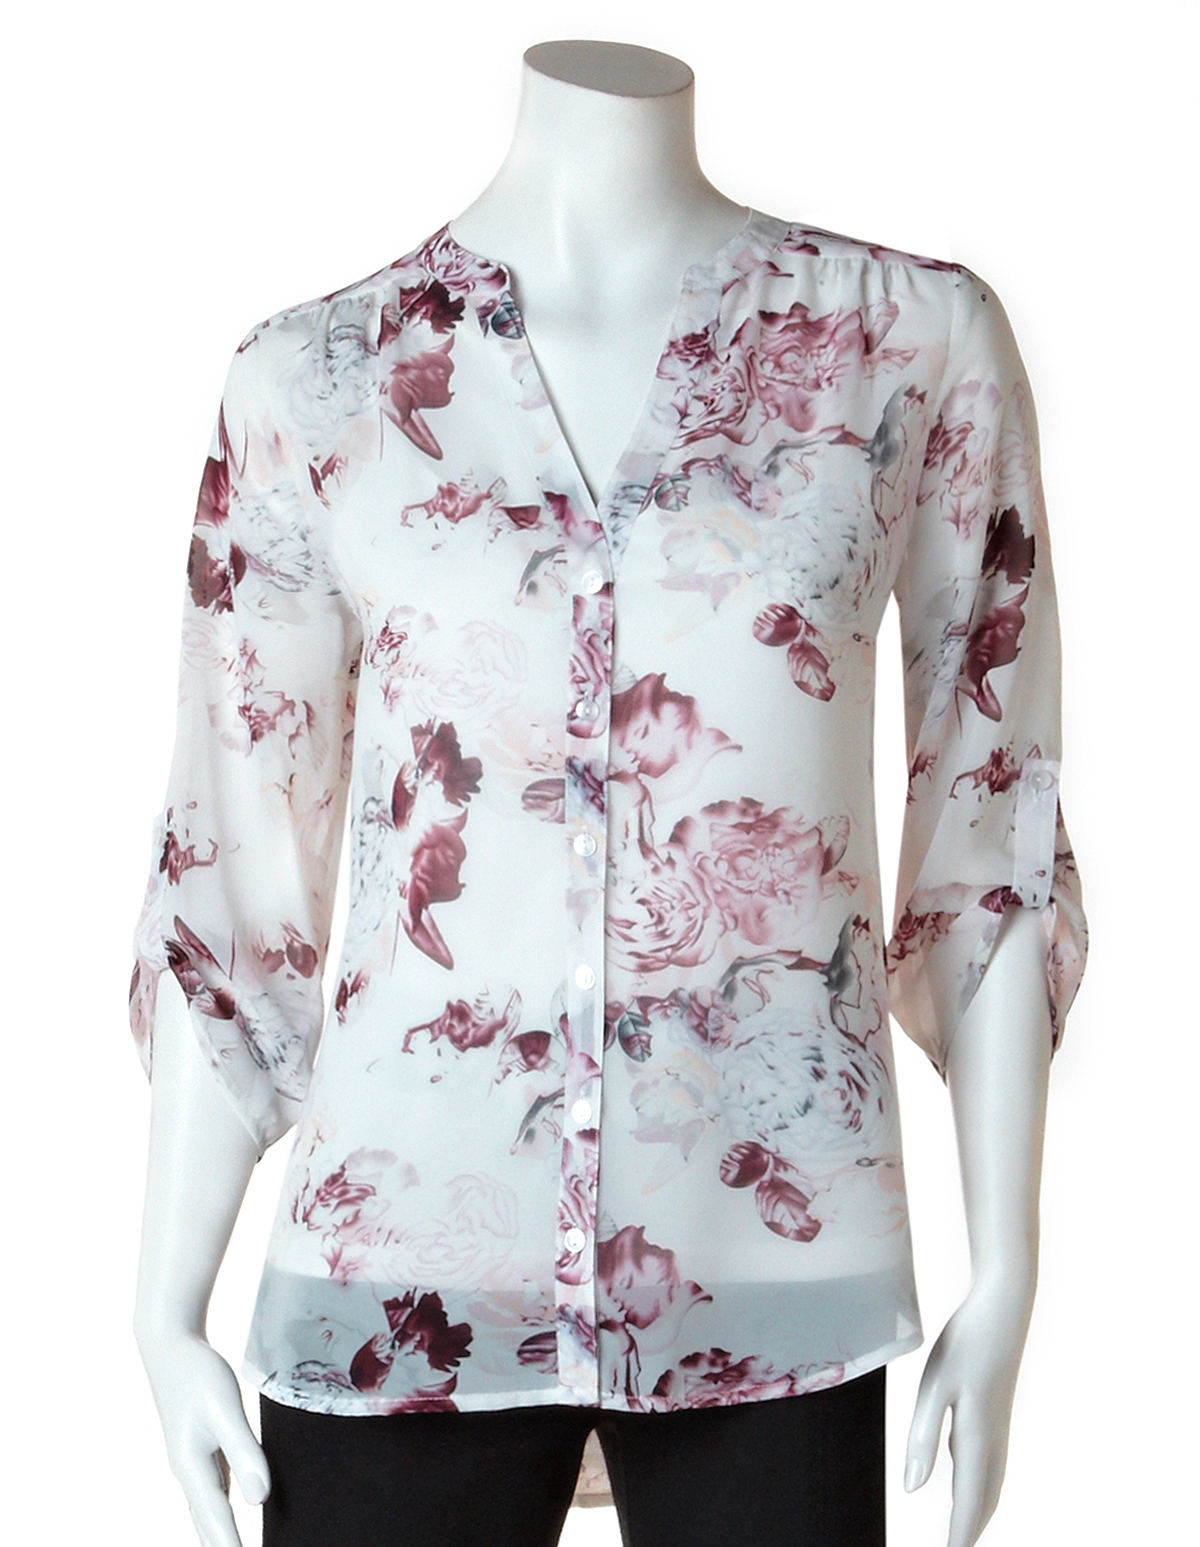 The latest collection of women's blouses include plain blue or white blouses as well as pieces with unique prints. Pick out your favourite for a perfect evening, office or casual look. Short or long sleeved blouses to give your look a touch of elegance.